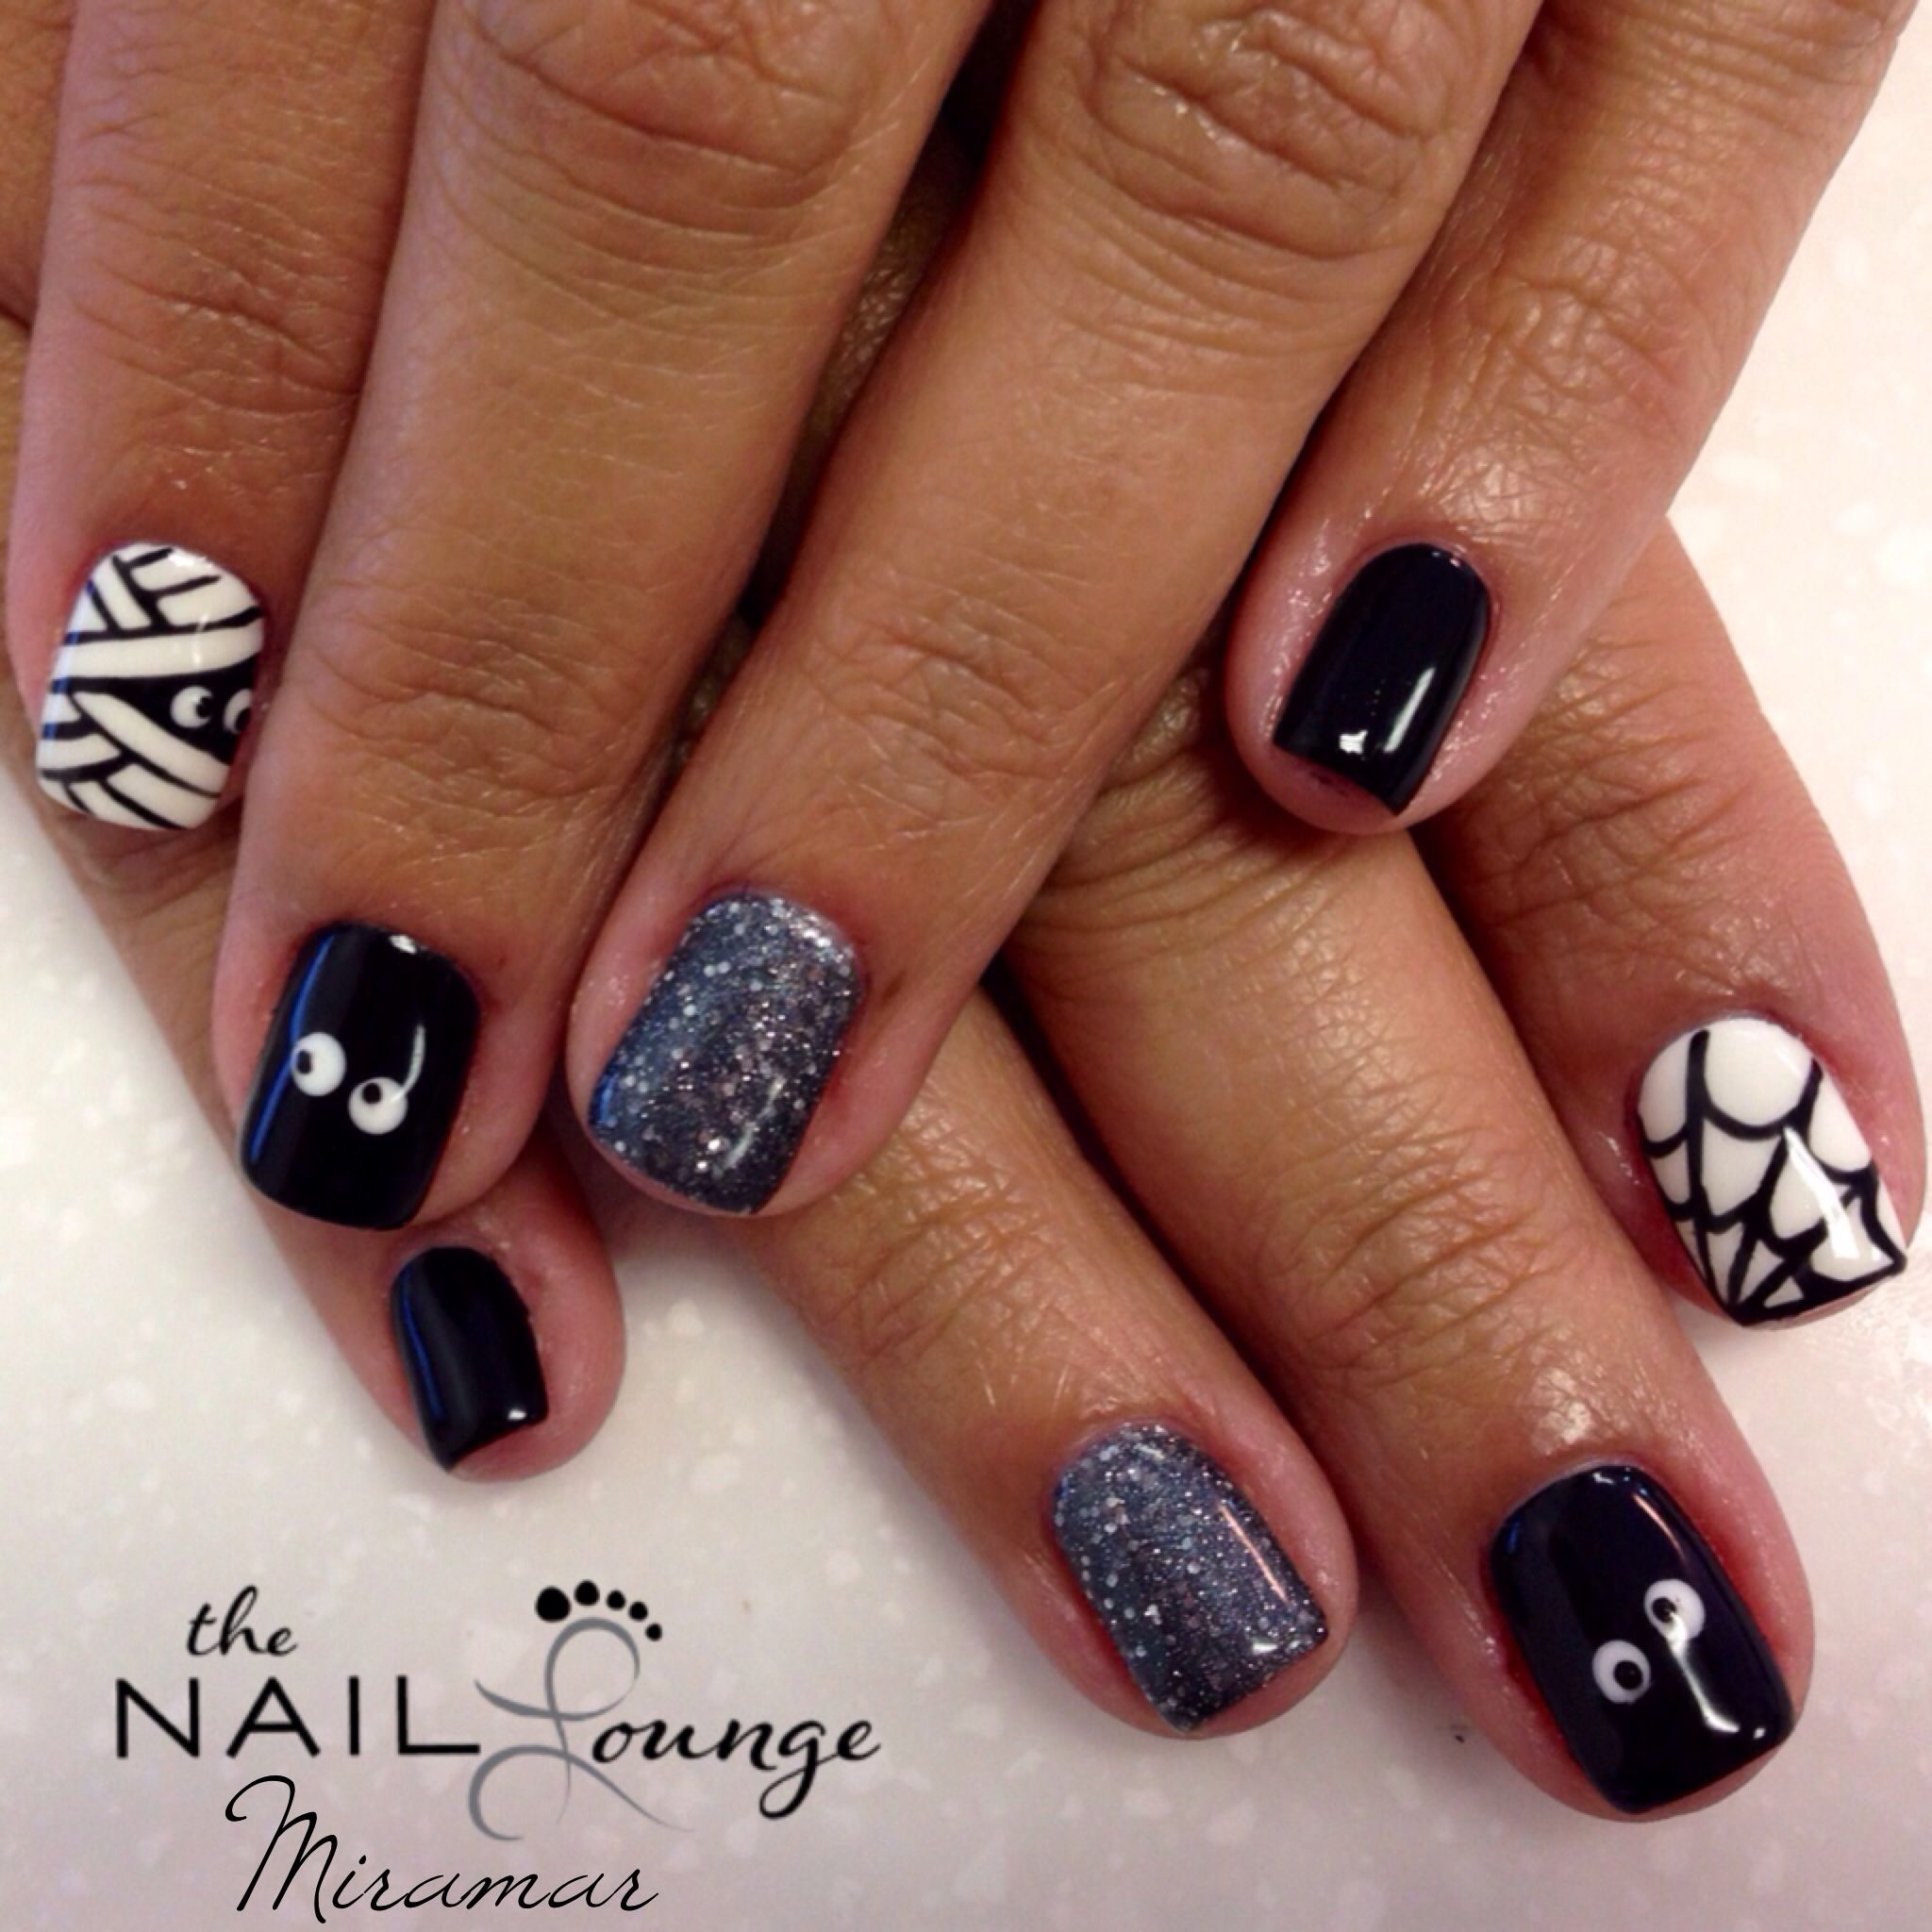 Pin by The Nail Lounge on Nail Art | Halloween nails ...